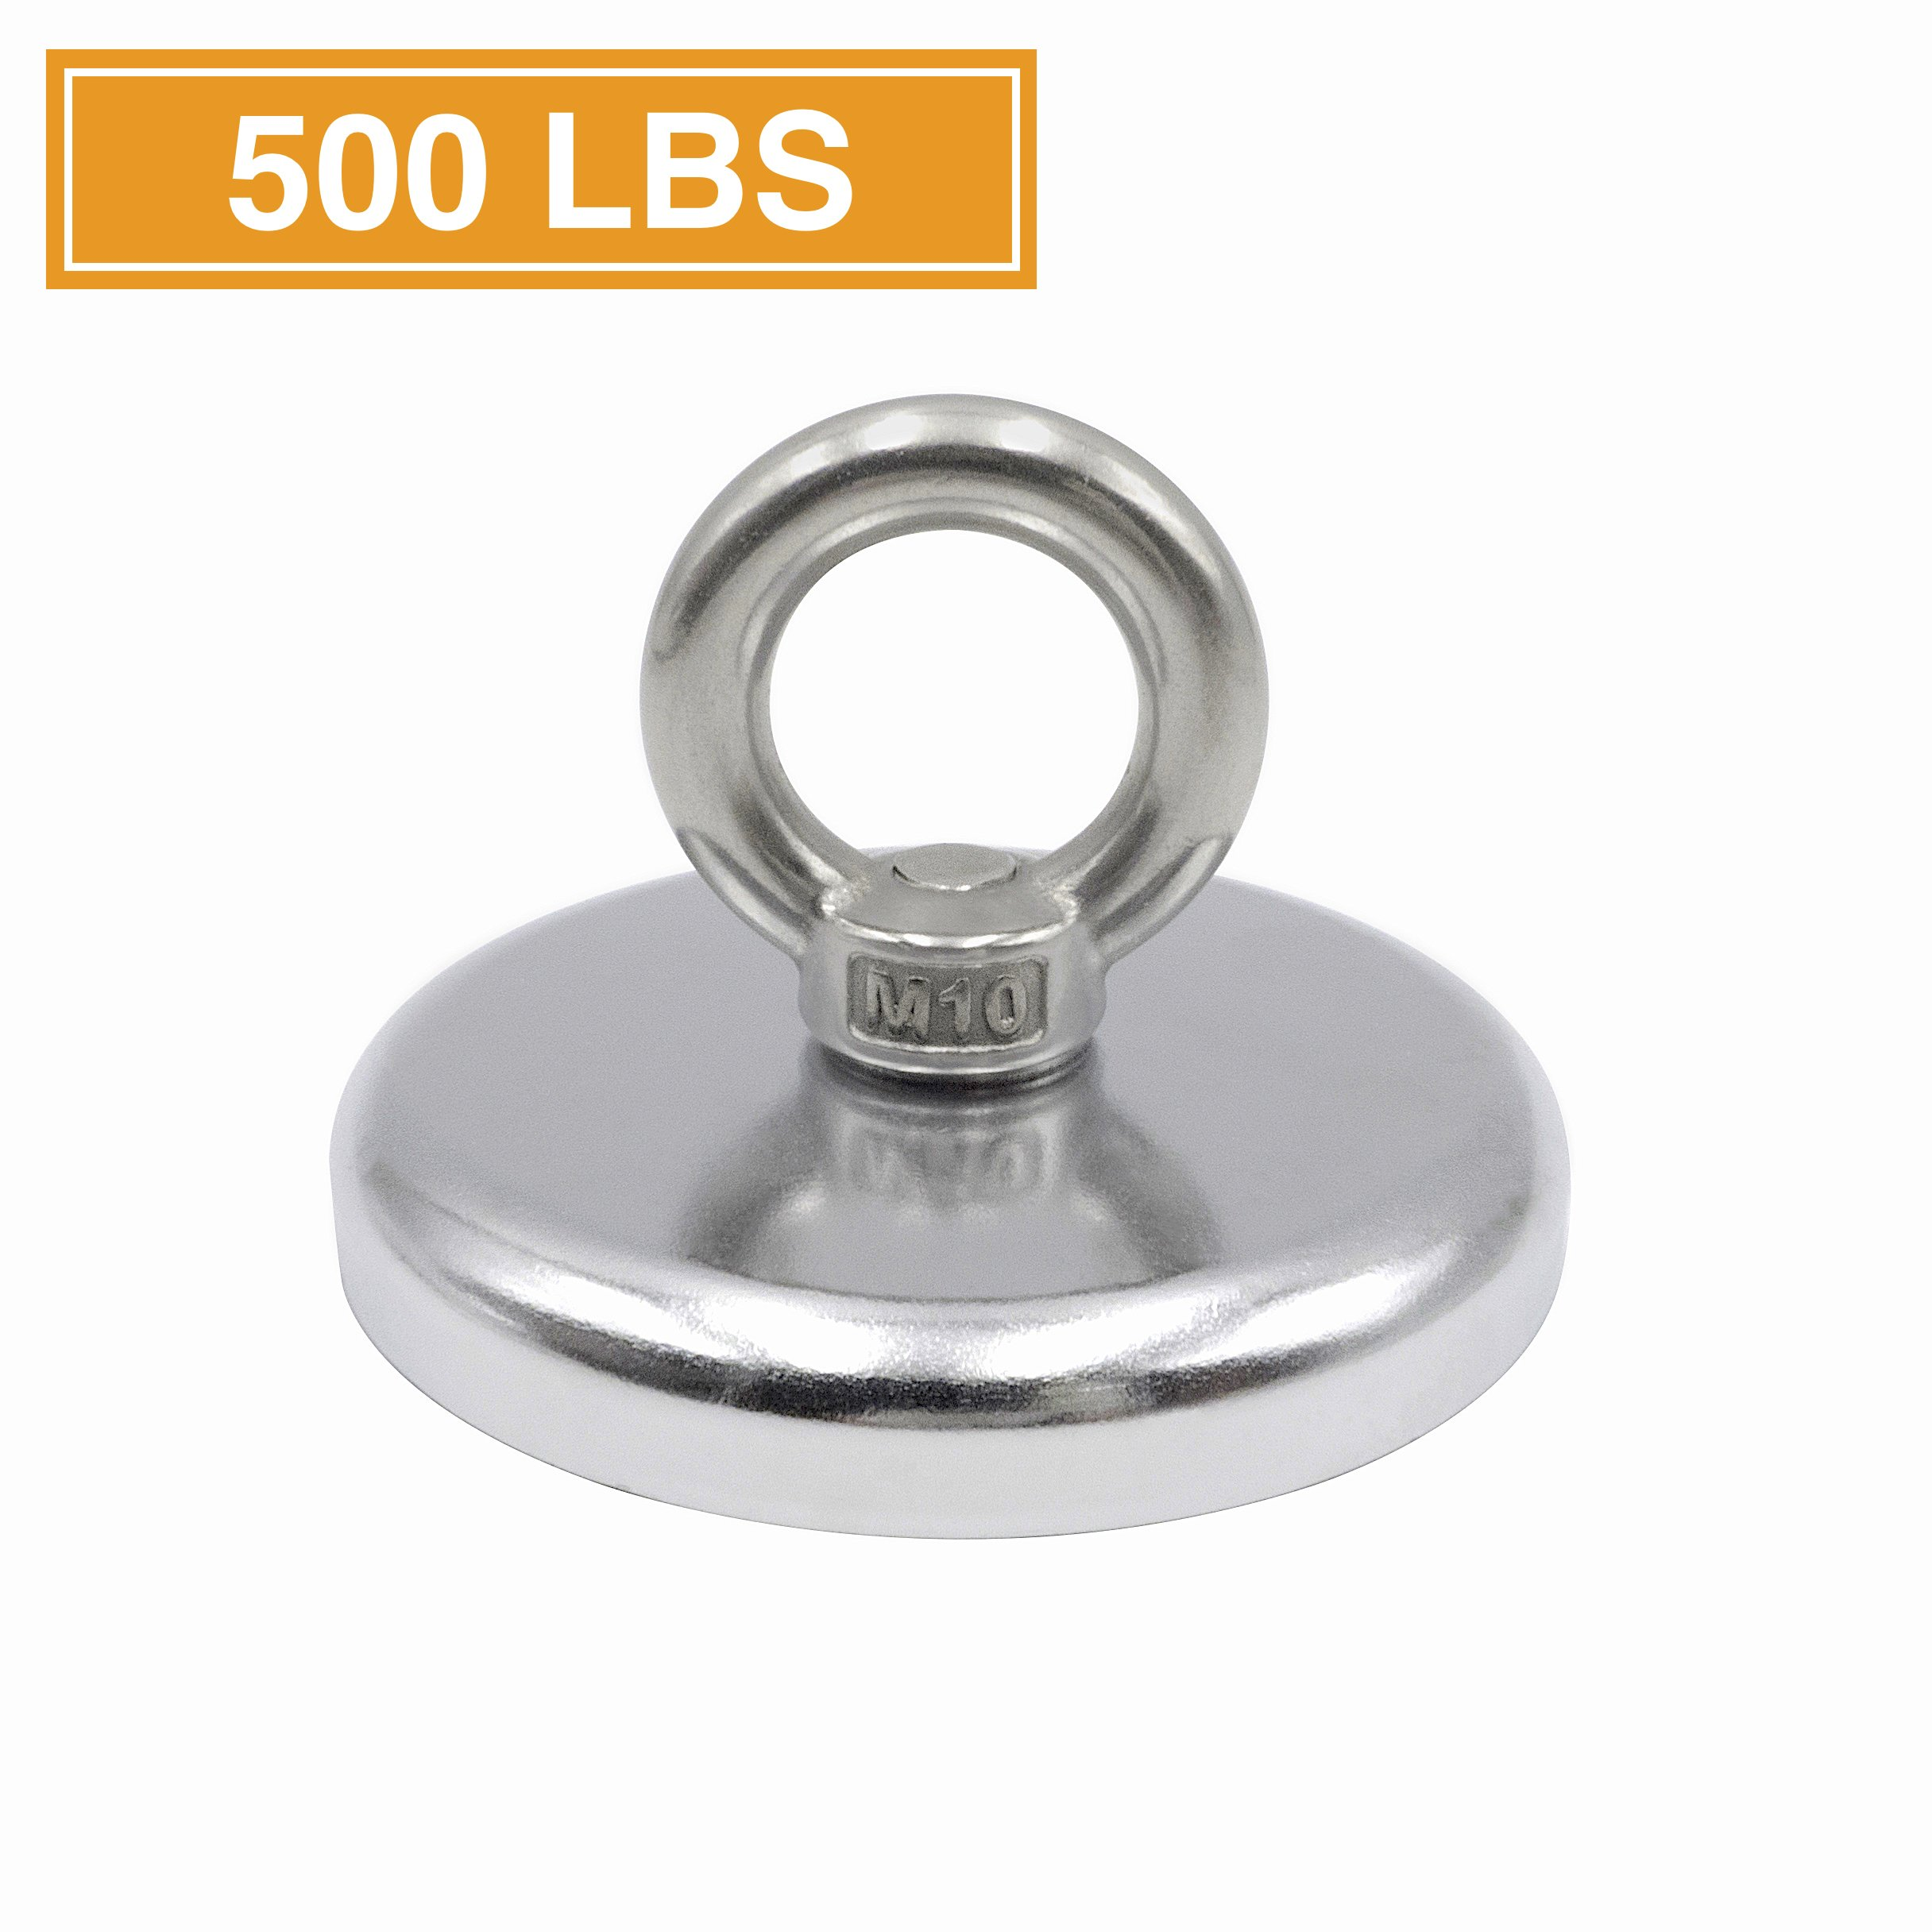 """500 lbs Pulling Force Super Strong and Powerful Round Neodymium Magnet for Salvage or Magnet Fishing with Countersunk Hole and Eyebolt, 3.54 """" Diameter"""